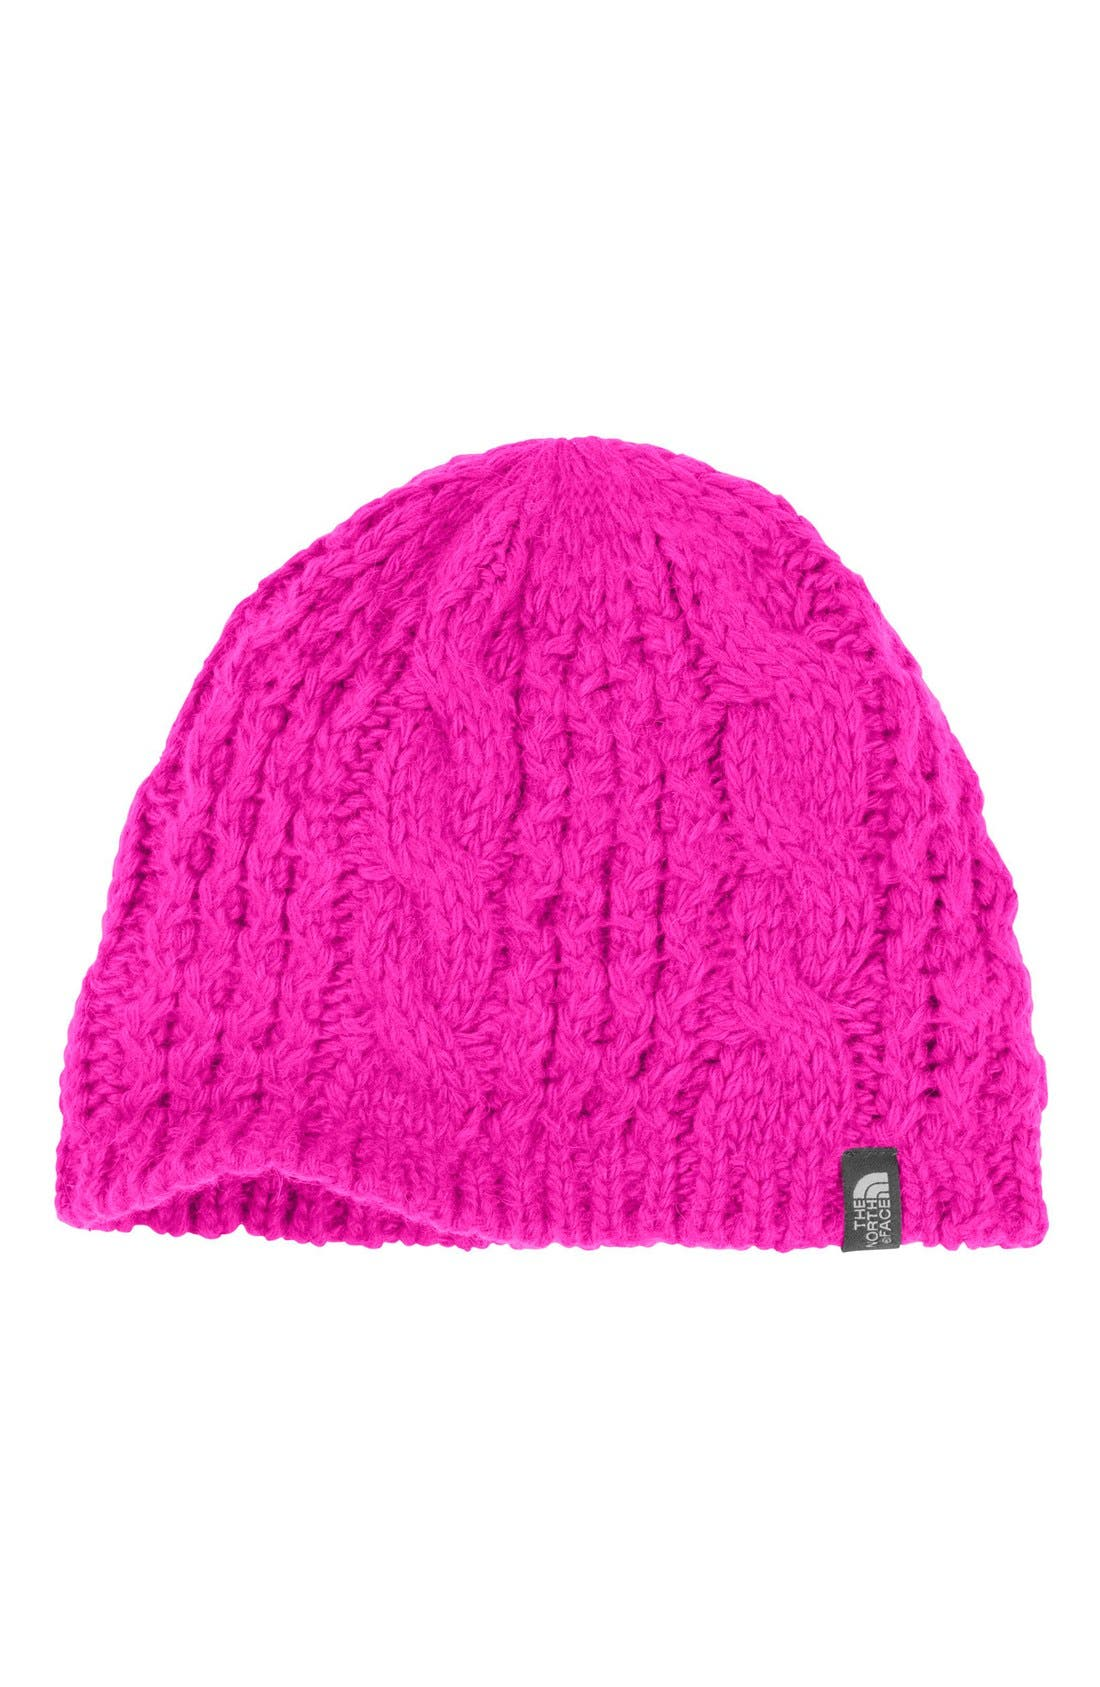 'Minna' Cable Knit Beanie,                             Main thumbnail 16, color,